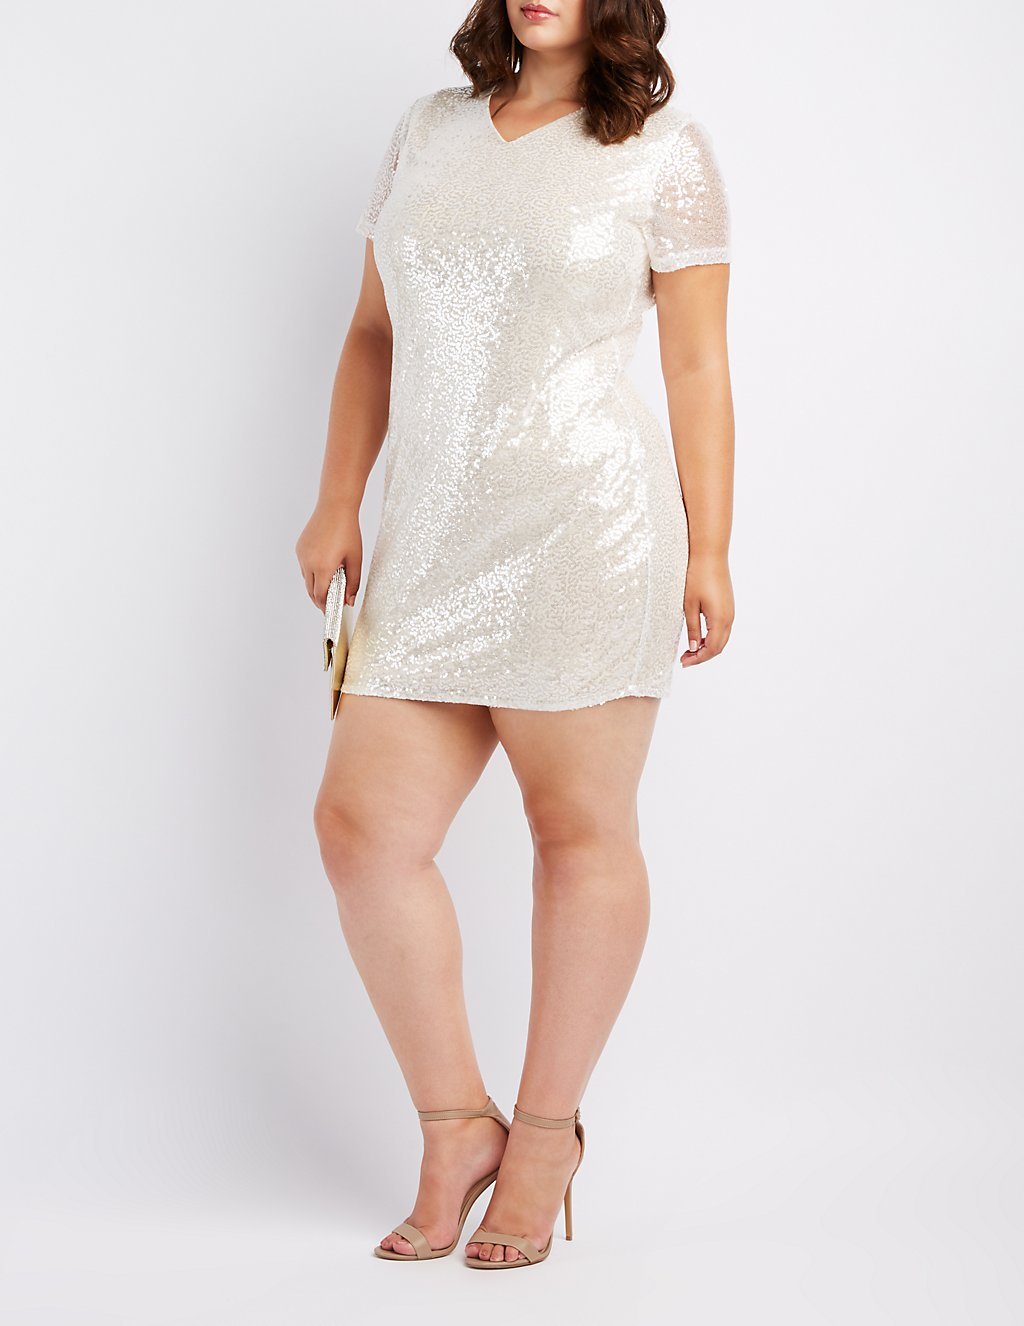 Plus Size Sequin Shift Dress | Charlotte Russe